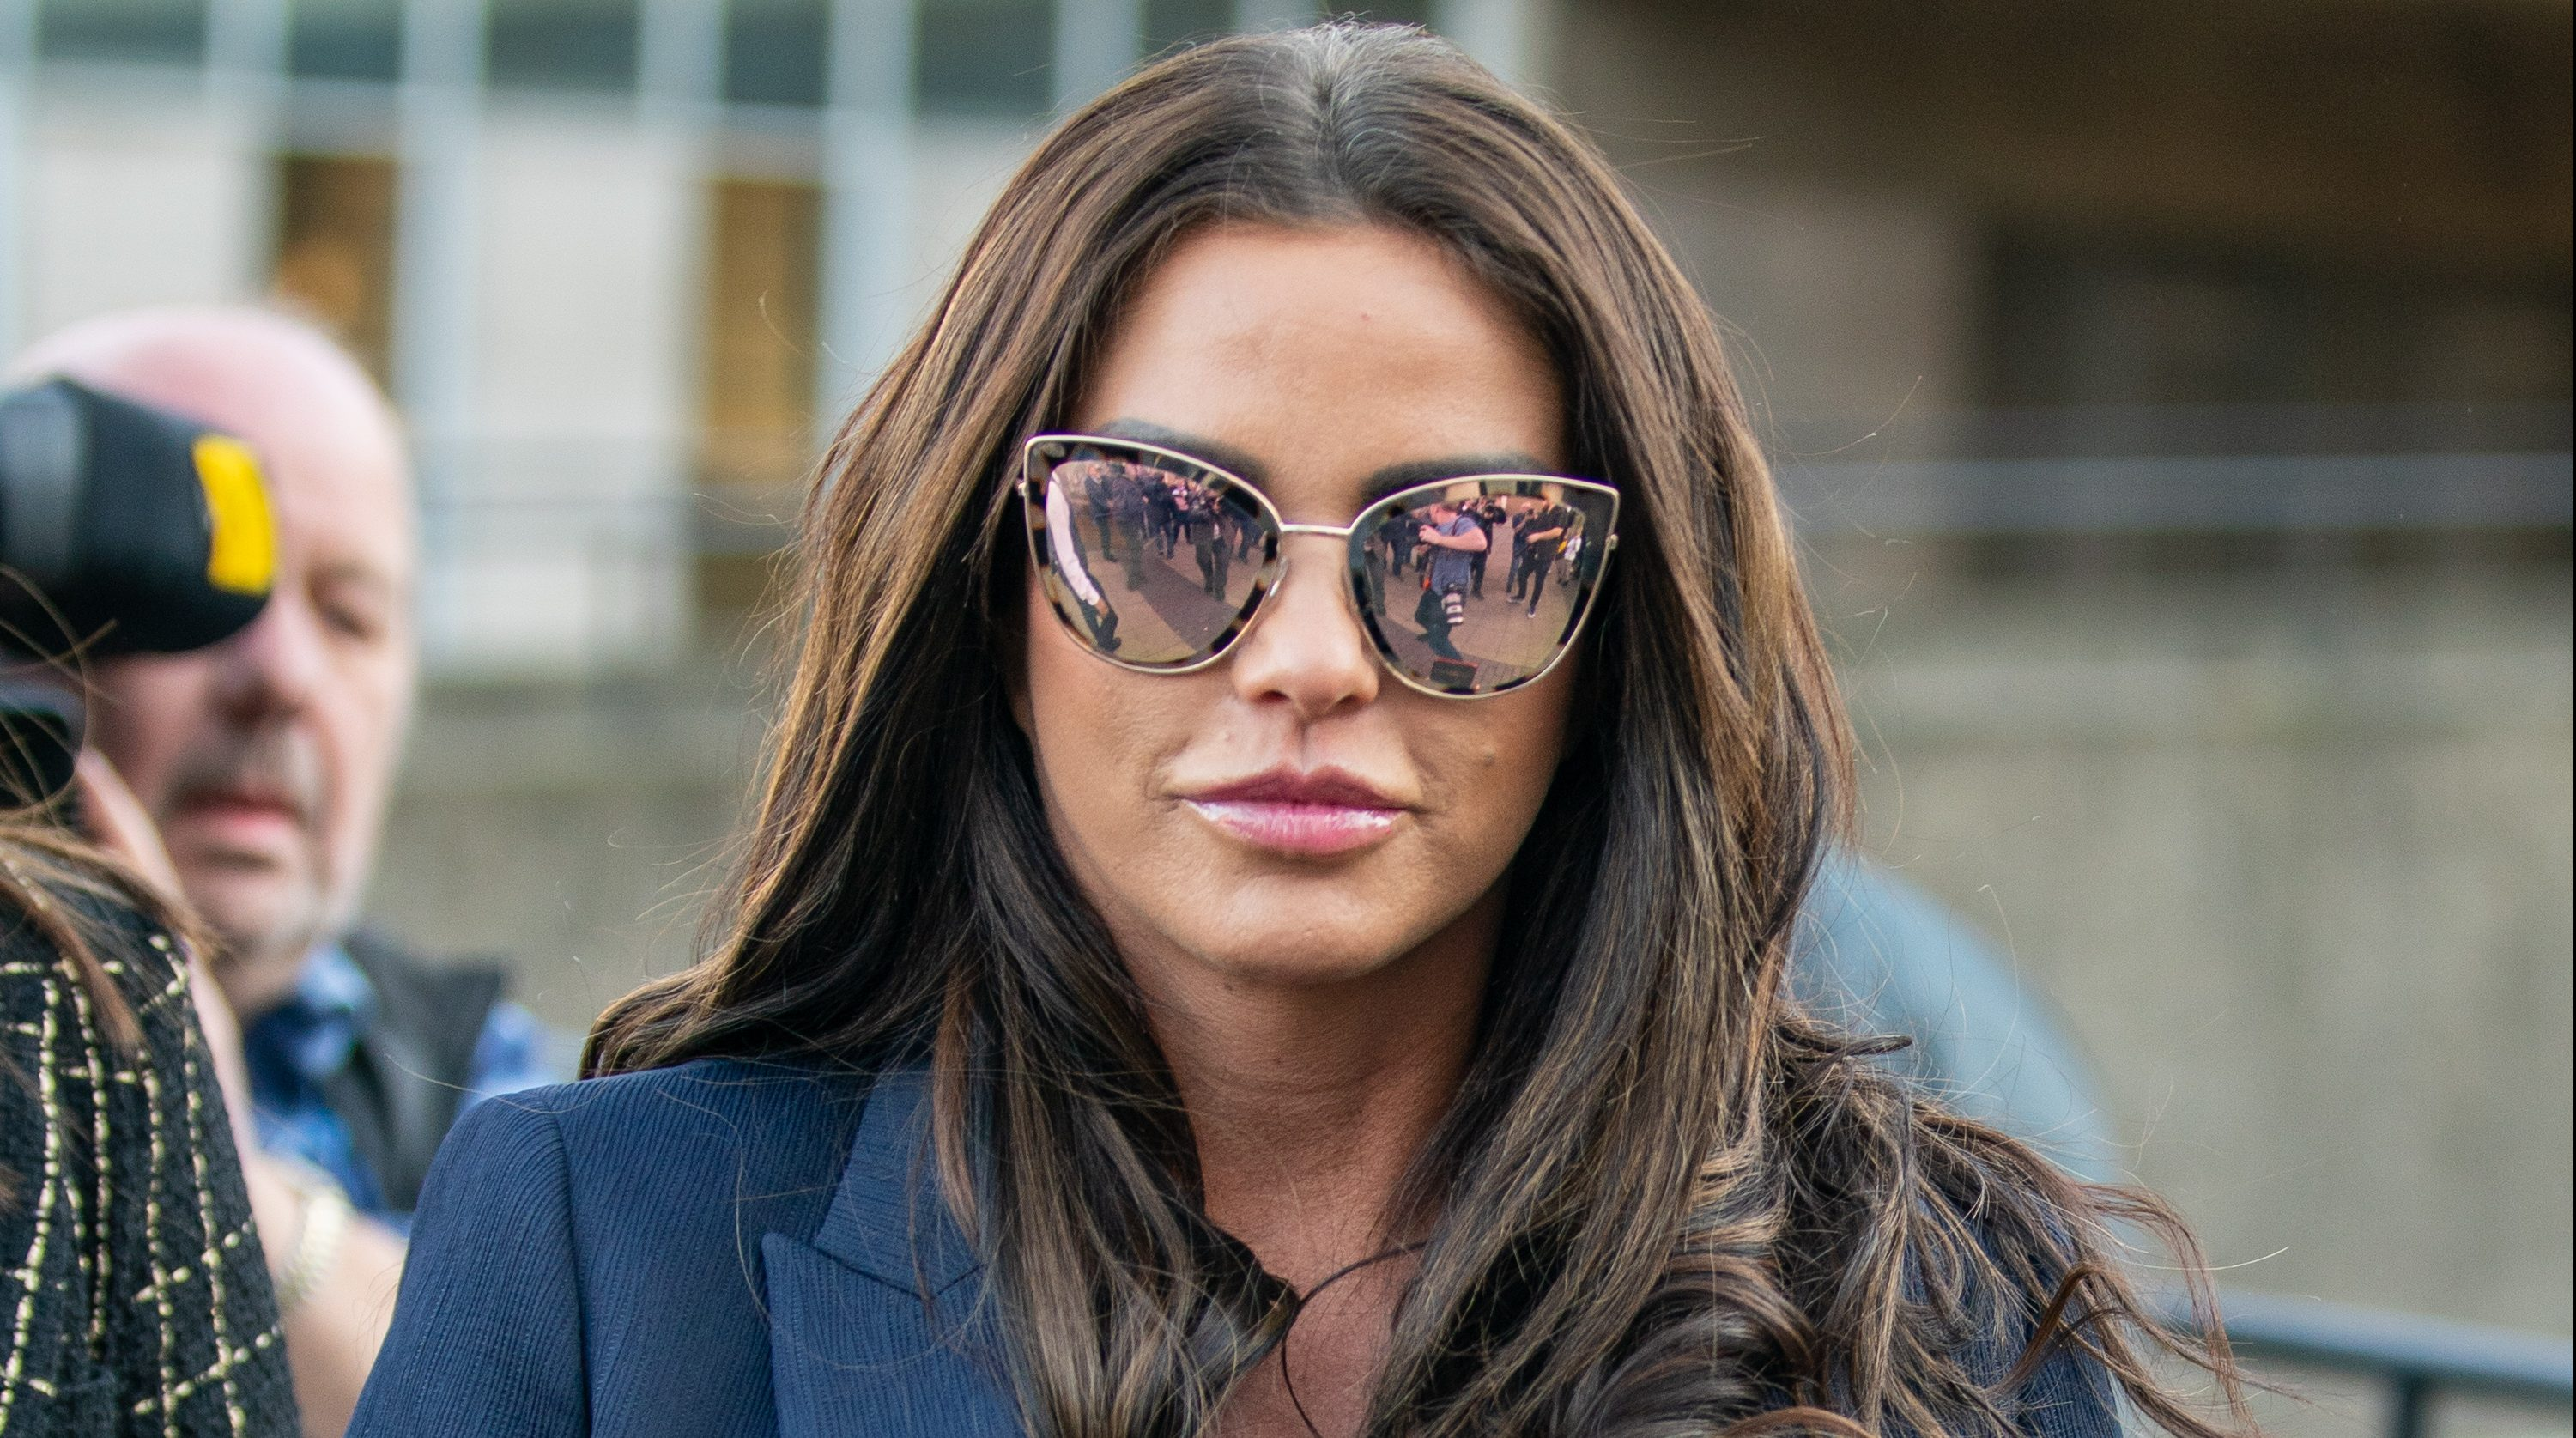 Katie Price vows to stay single 'until she meets someone worth it'